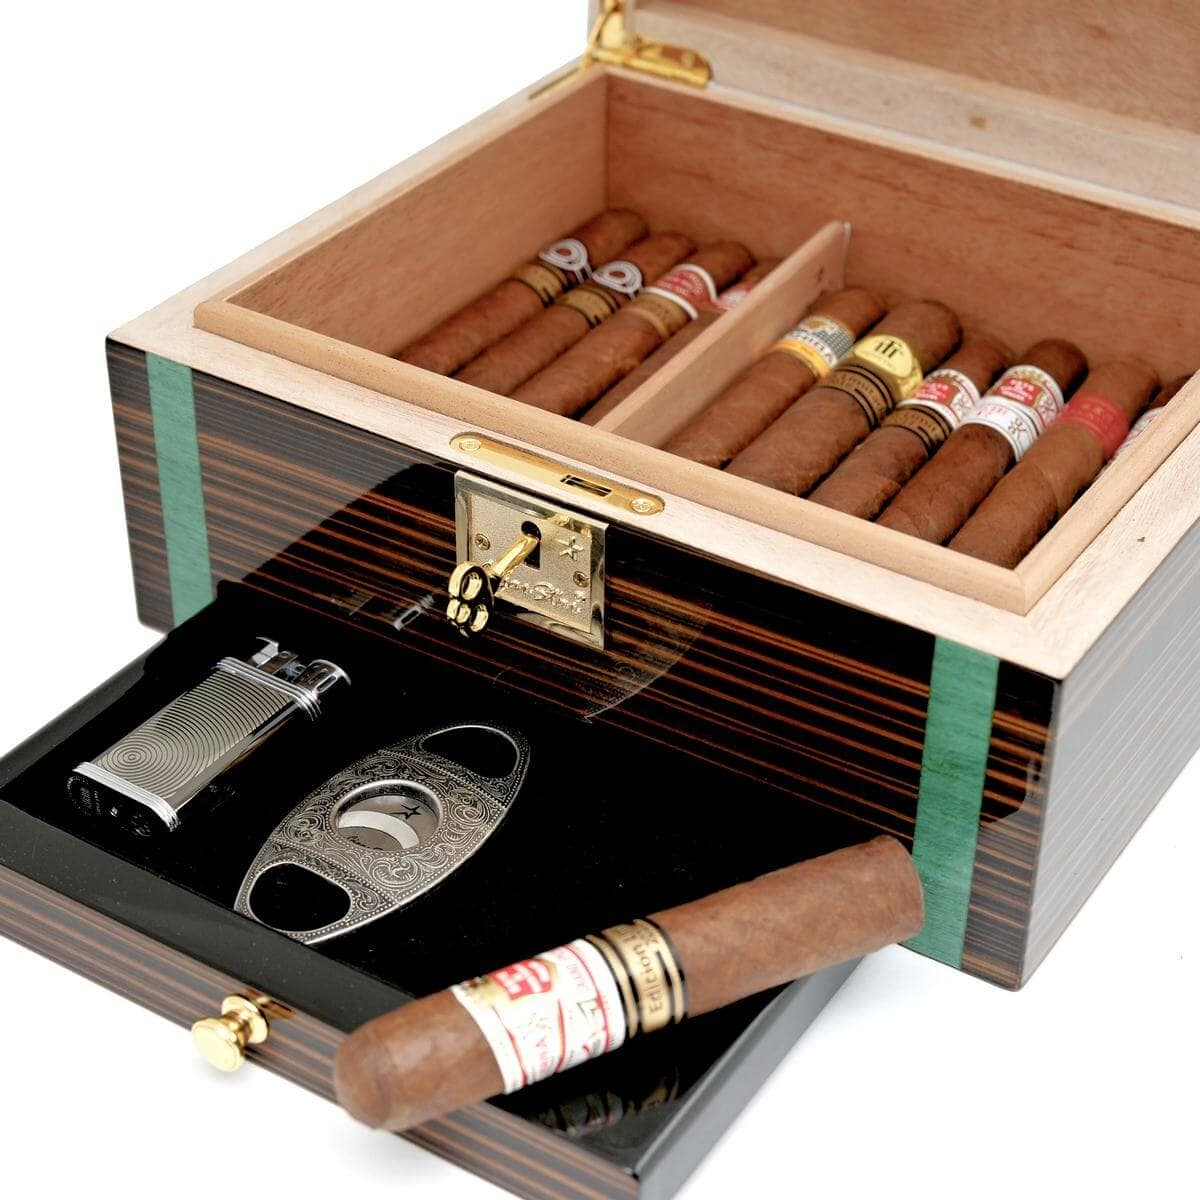 Should you acclimate new dry cigars before adding to your humidor?